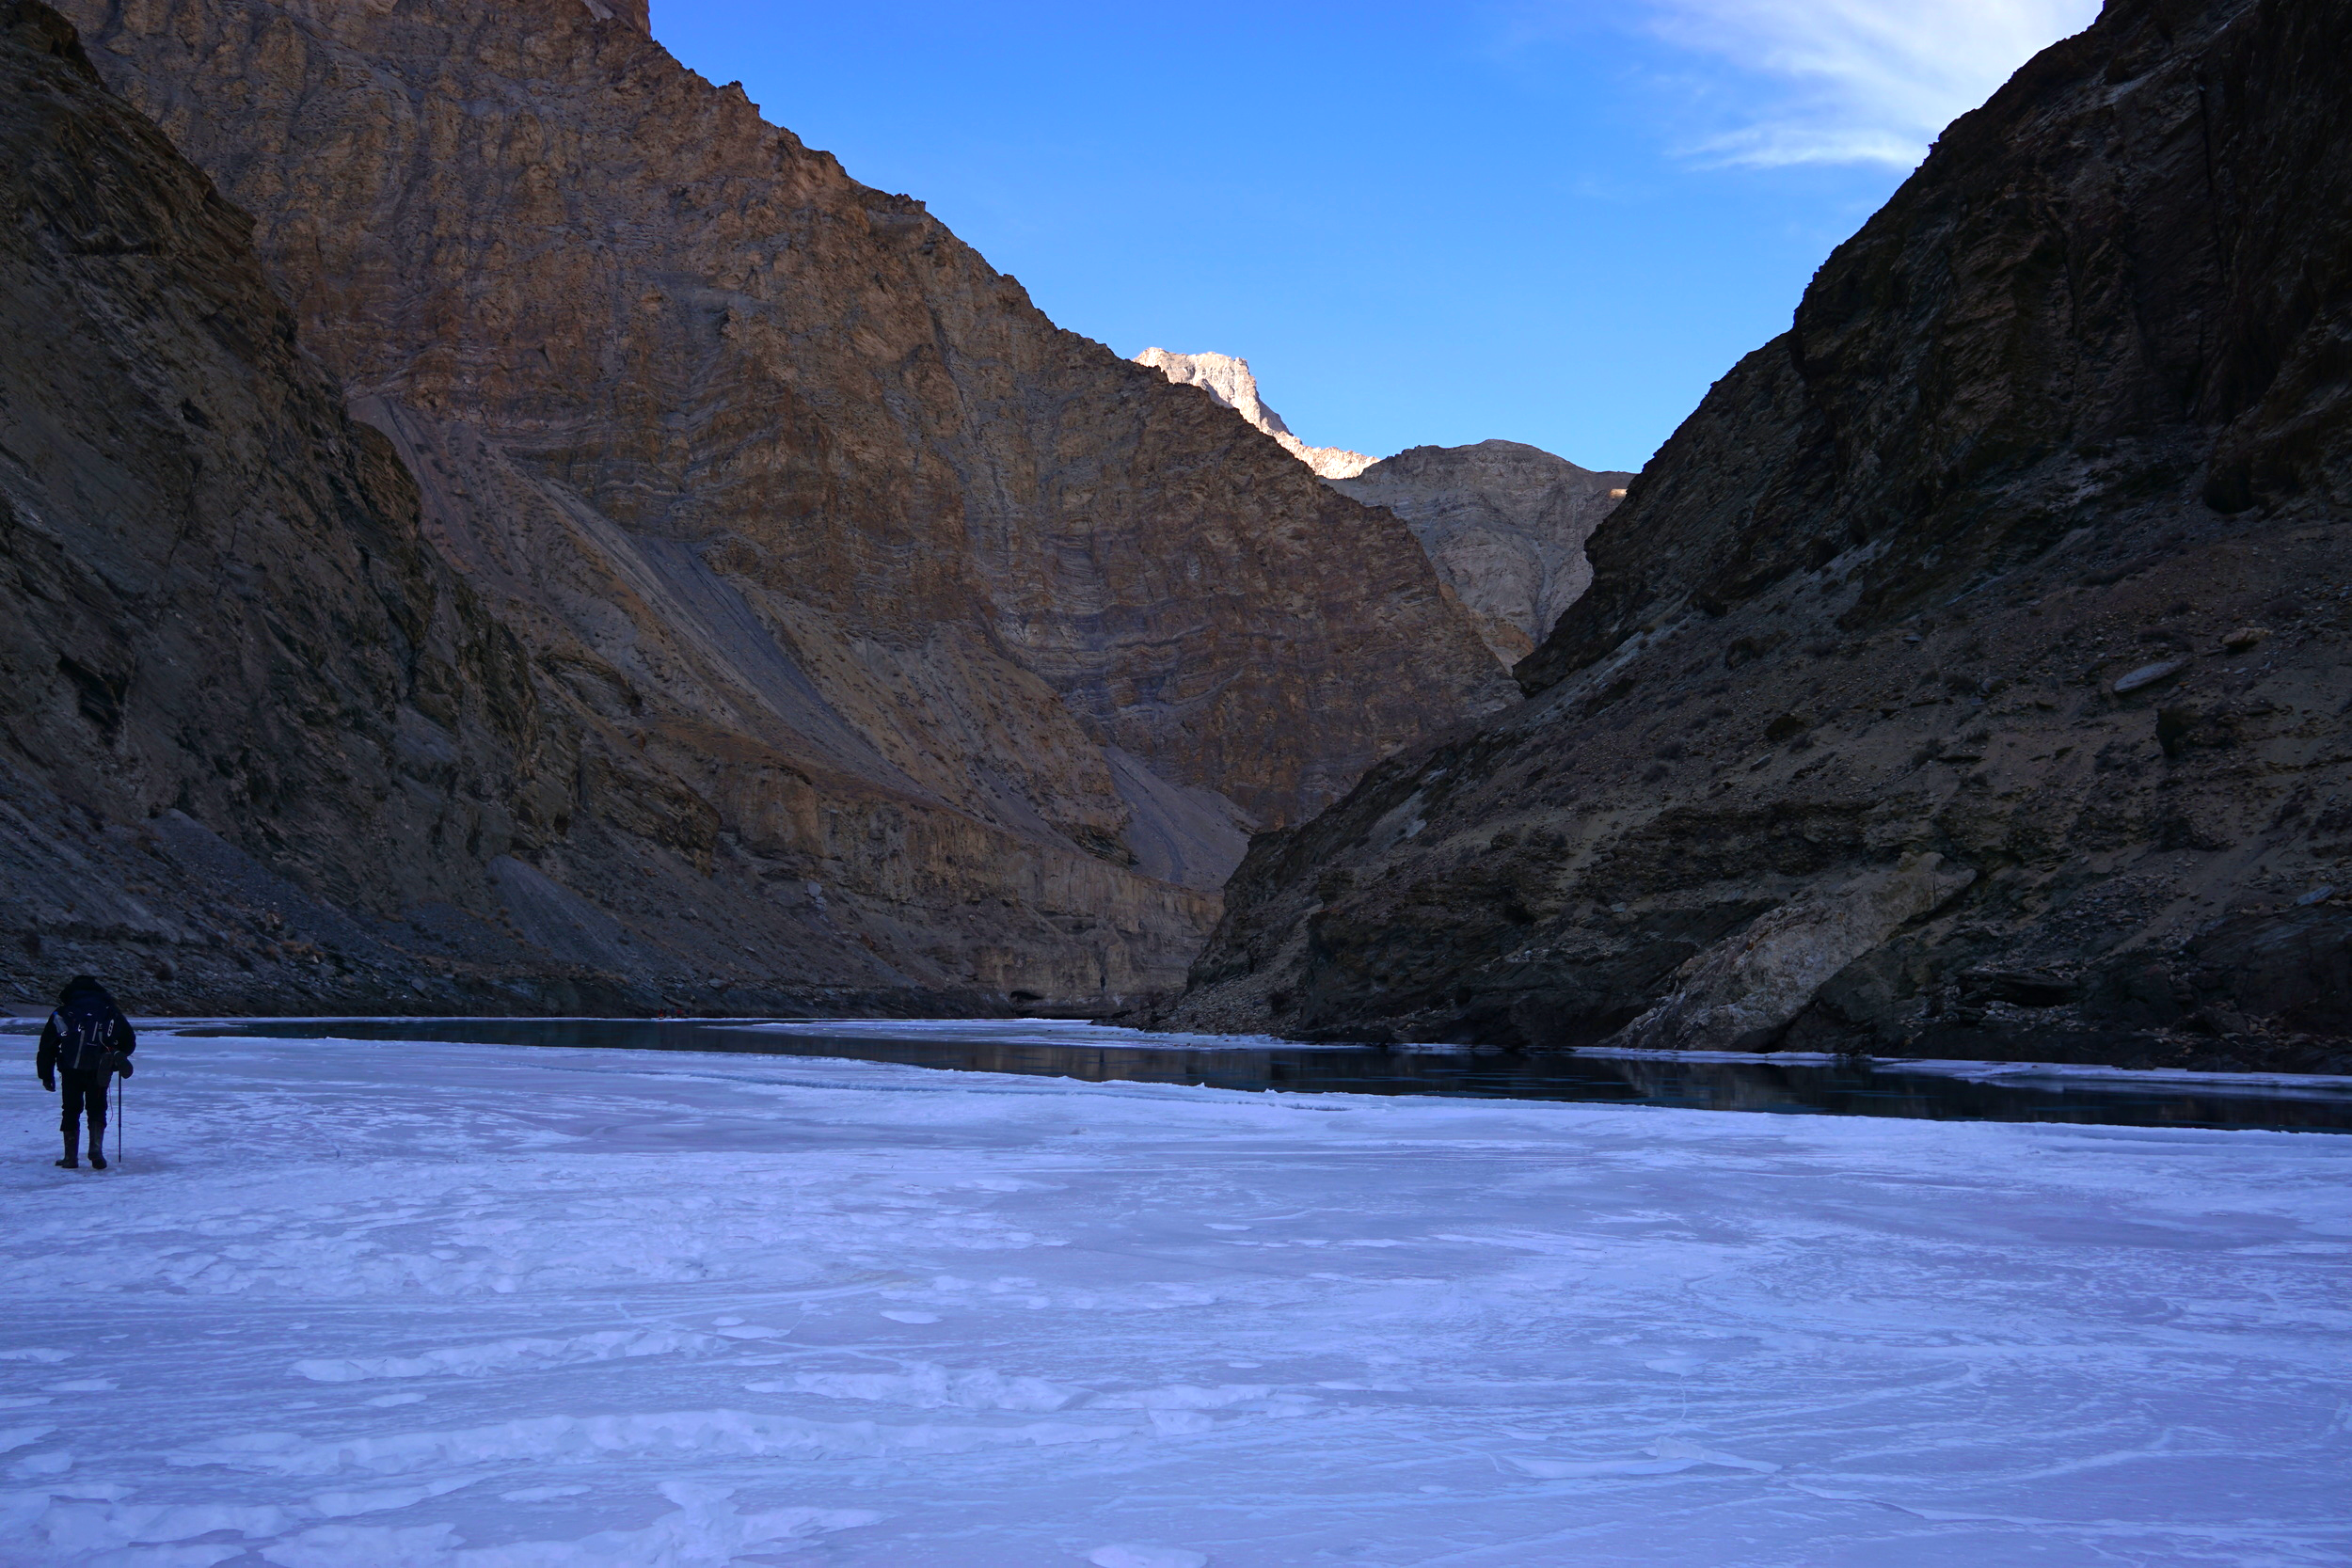 Darkness and desolation. I could get used to this during the chadar trek in ladakh